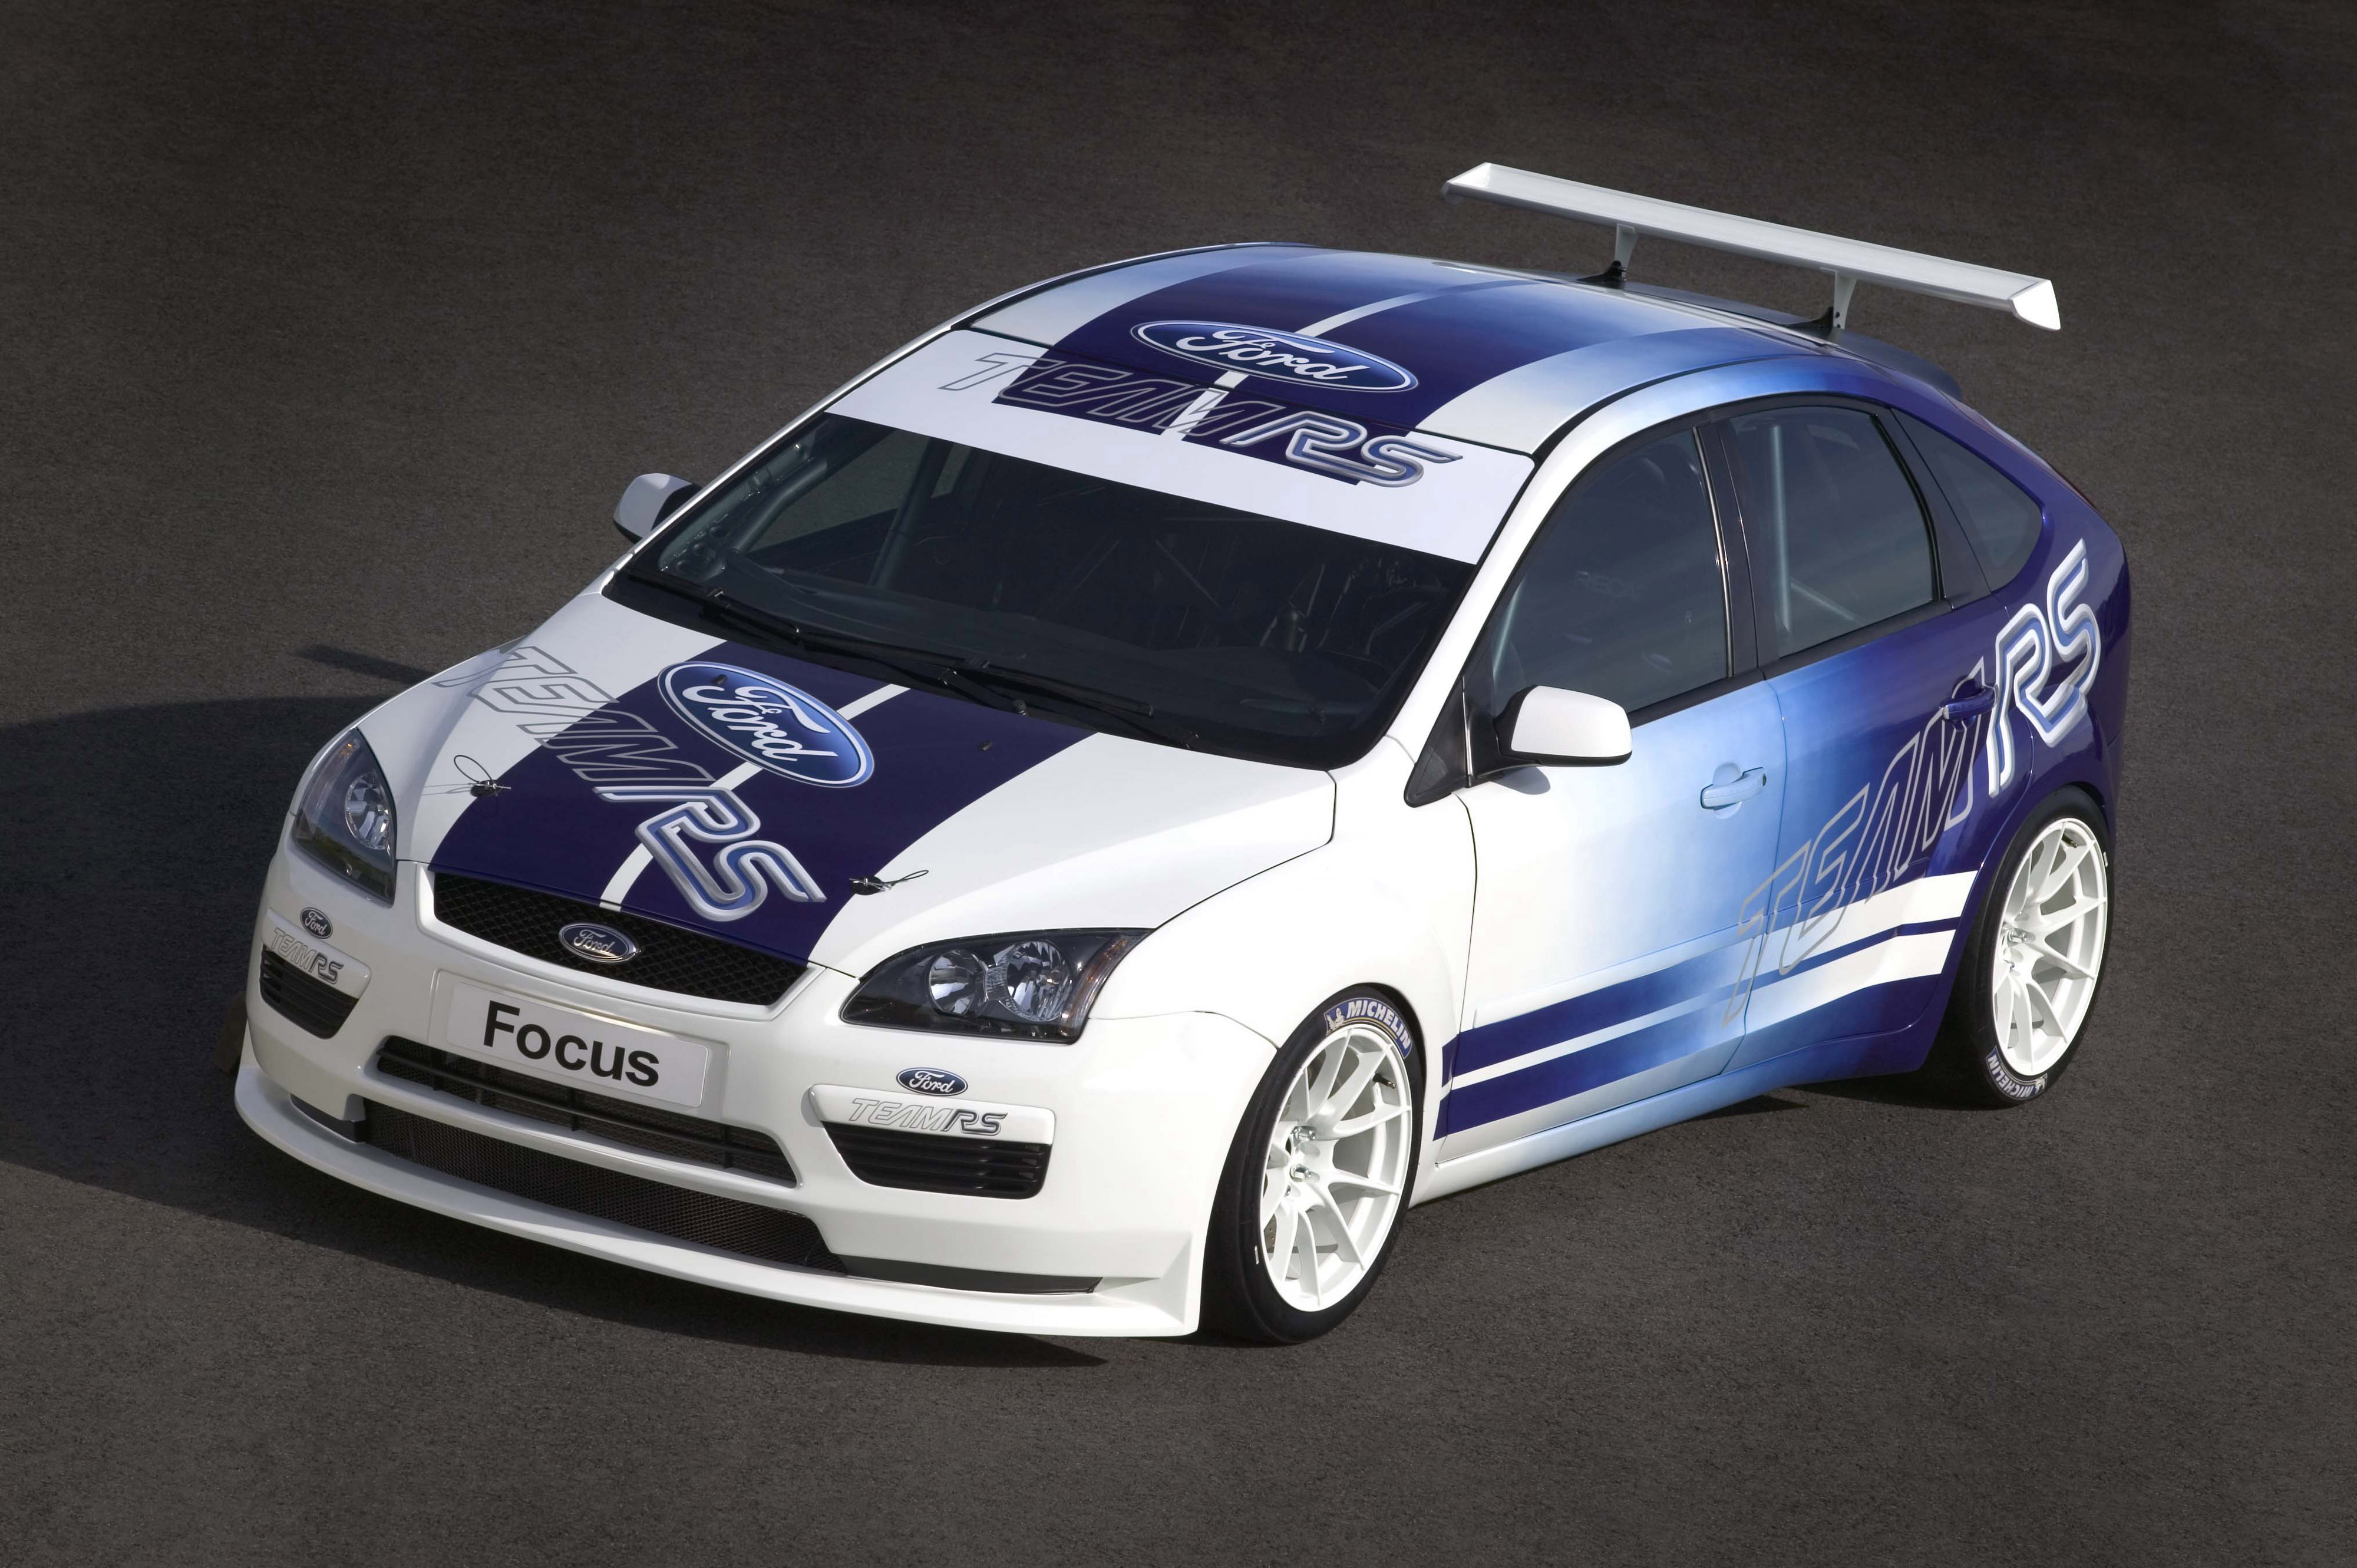 Focus Touring Car Concept Picture 17559 Rs 500 Wiring Diagram